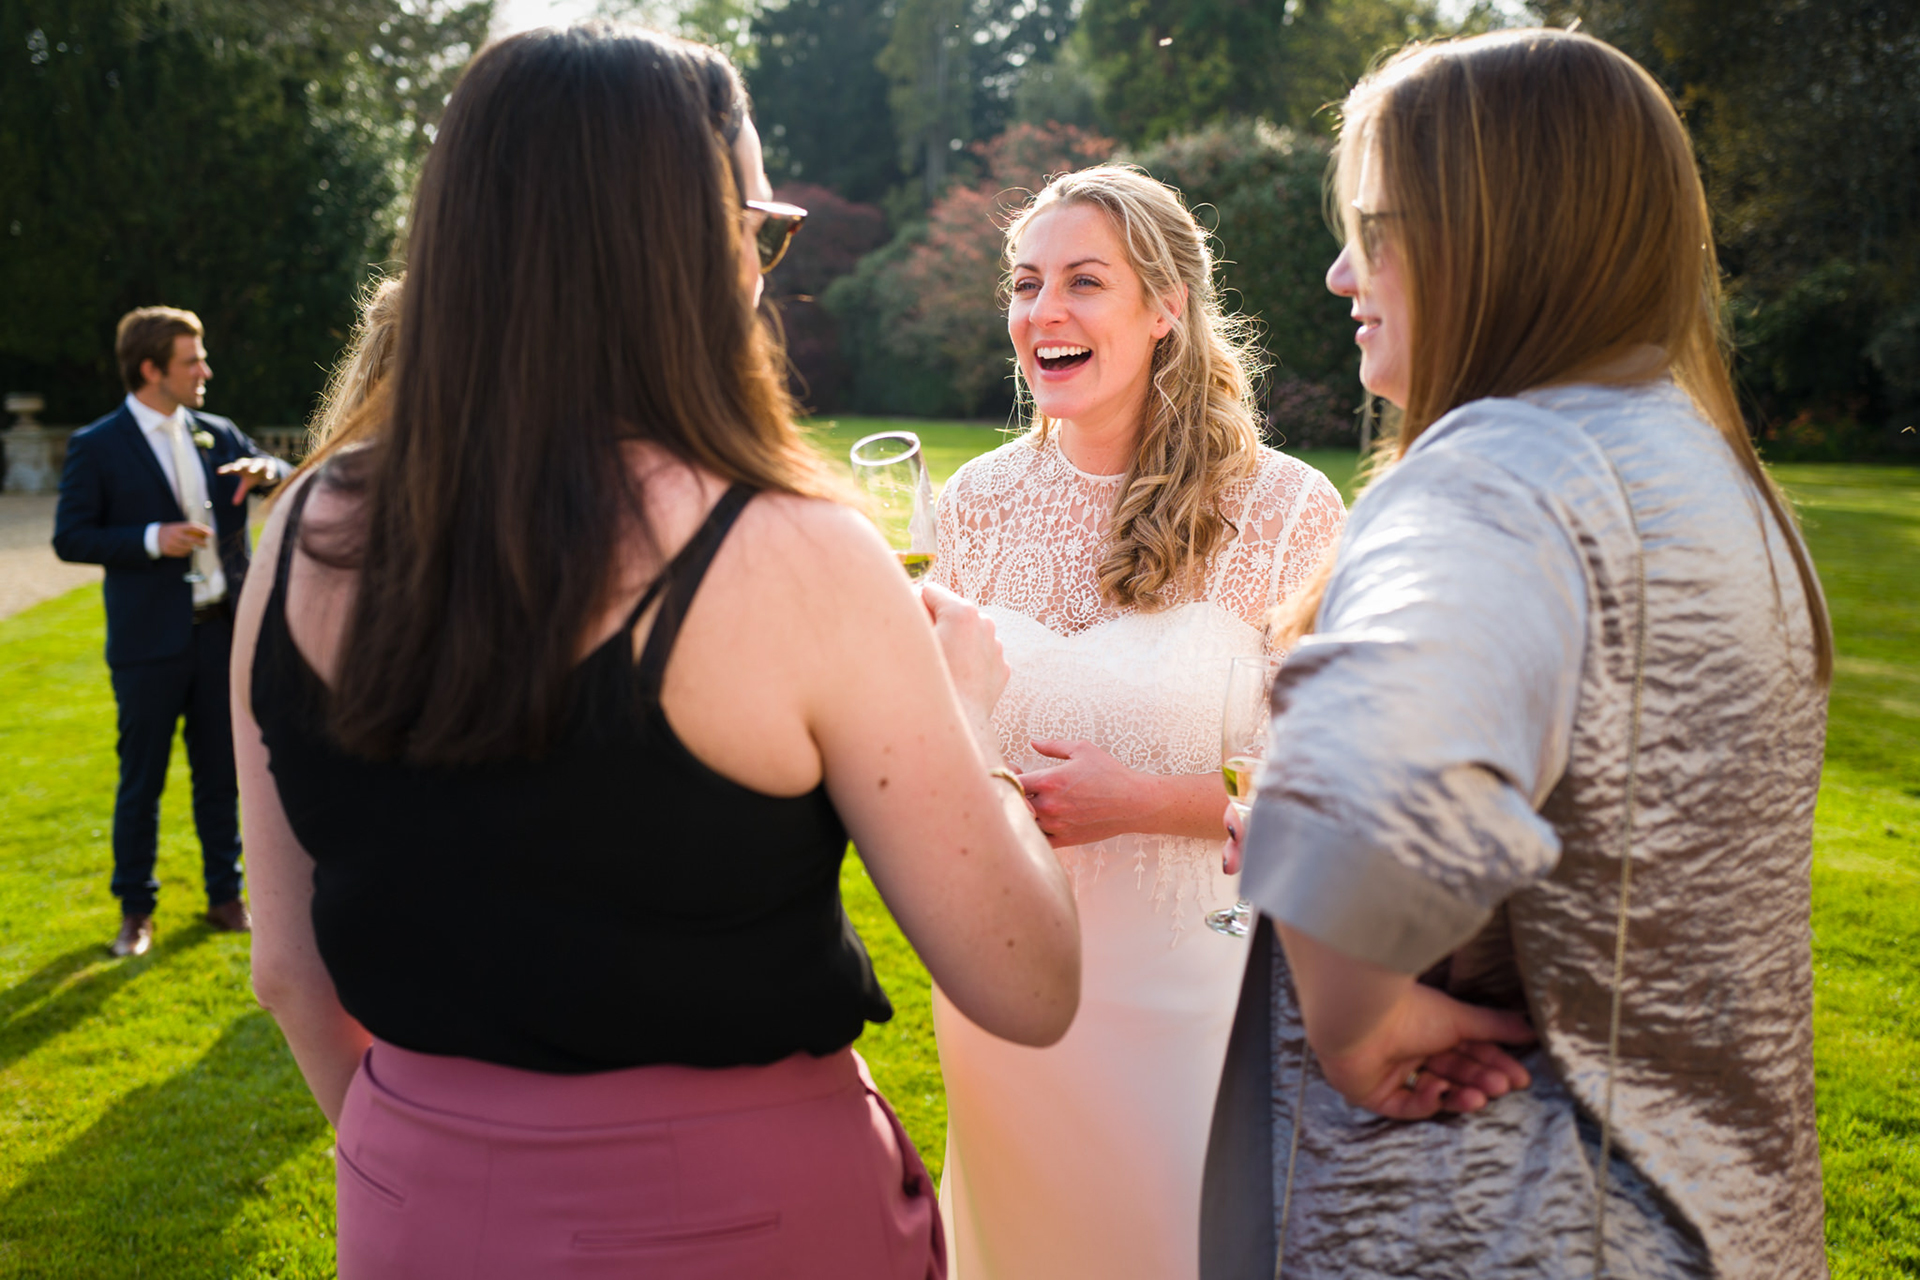 UK Elopement Bride w/ Friends Picture | The party has moved outside into the bright, warm sunlight